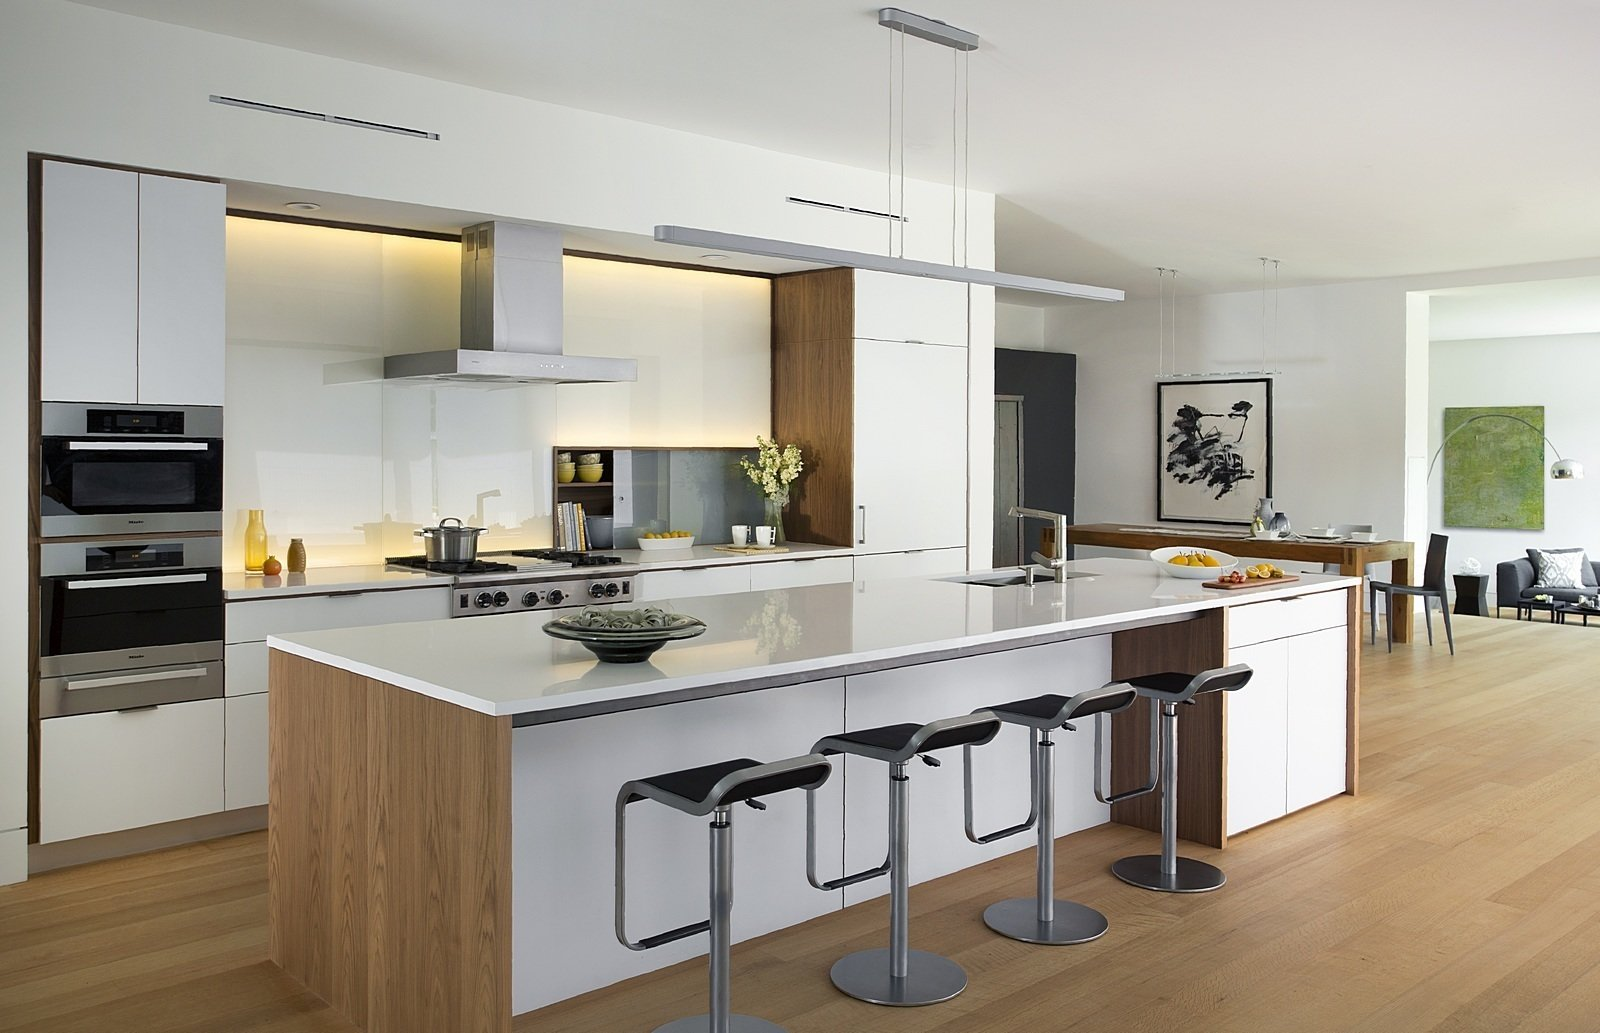 Kitchen, Engineered Quartz Counter, Refrigerator, Wall Oven, Cooktops, Range Hood, Range, Pendant Lighting, Light Hardwood Floor, and White Cabinet This kitchen features a sleek Henrybuilt kitchen system in white.  Photo 3 of 7 in A Modern Green Home in a Historic Colonial Town